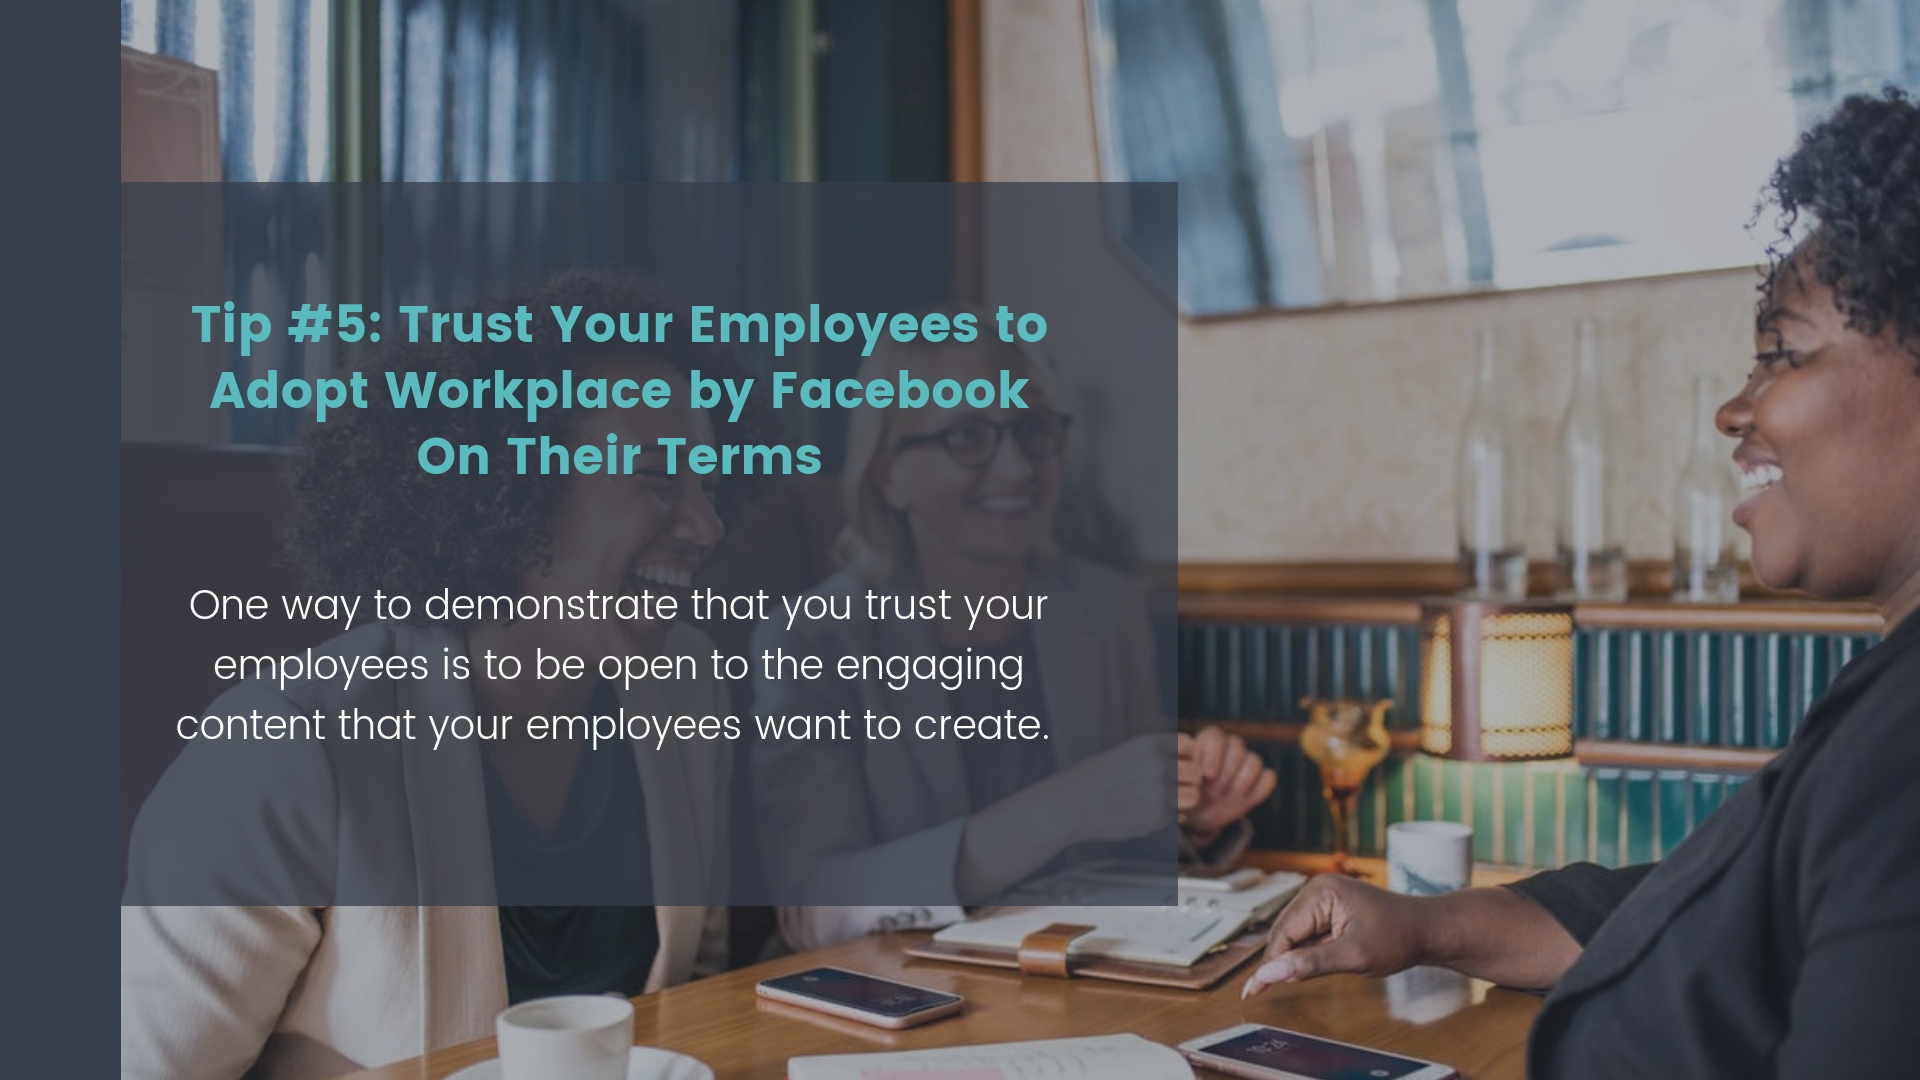 Tip #5: Trust Your Employees to Adopt Workplace by Facebook On Their Terms